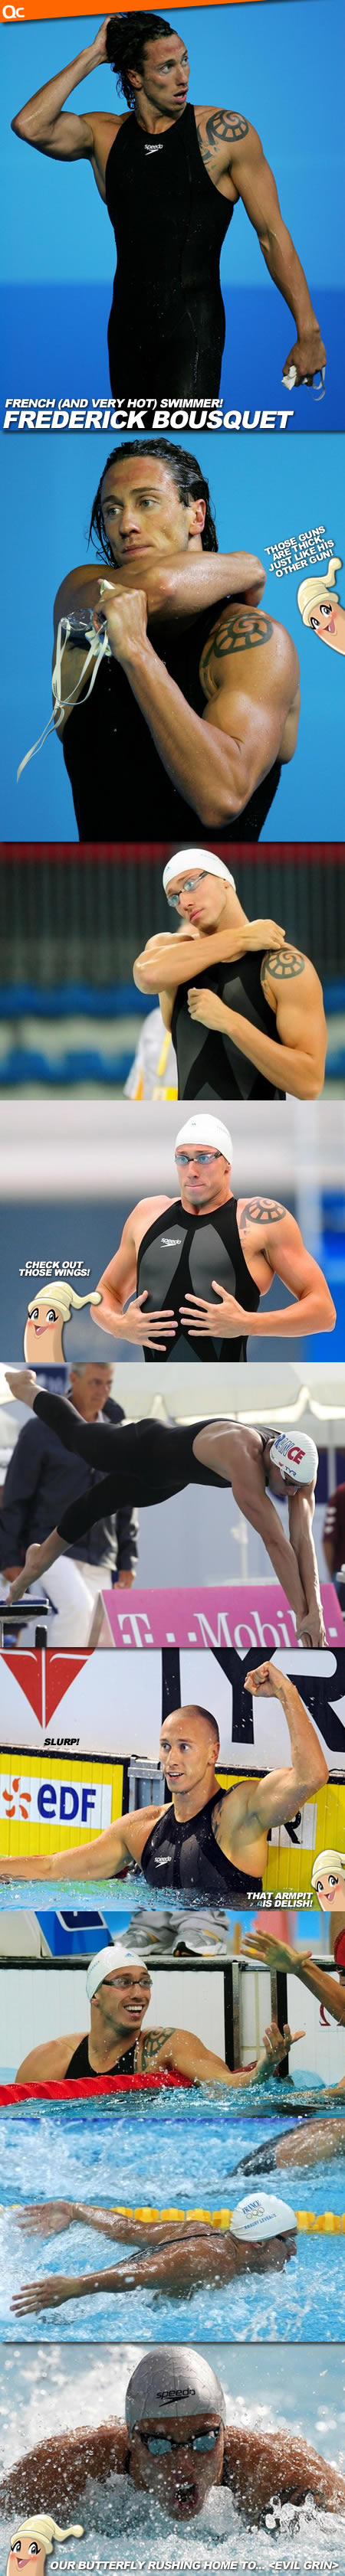 Olympic Silver Medallist Frederick Bousquet is too hot!! Does the water in the pool boil?